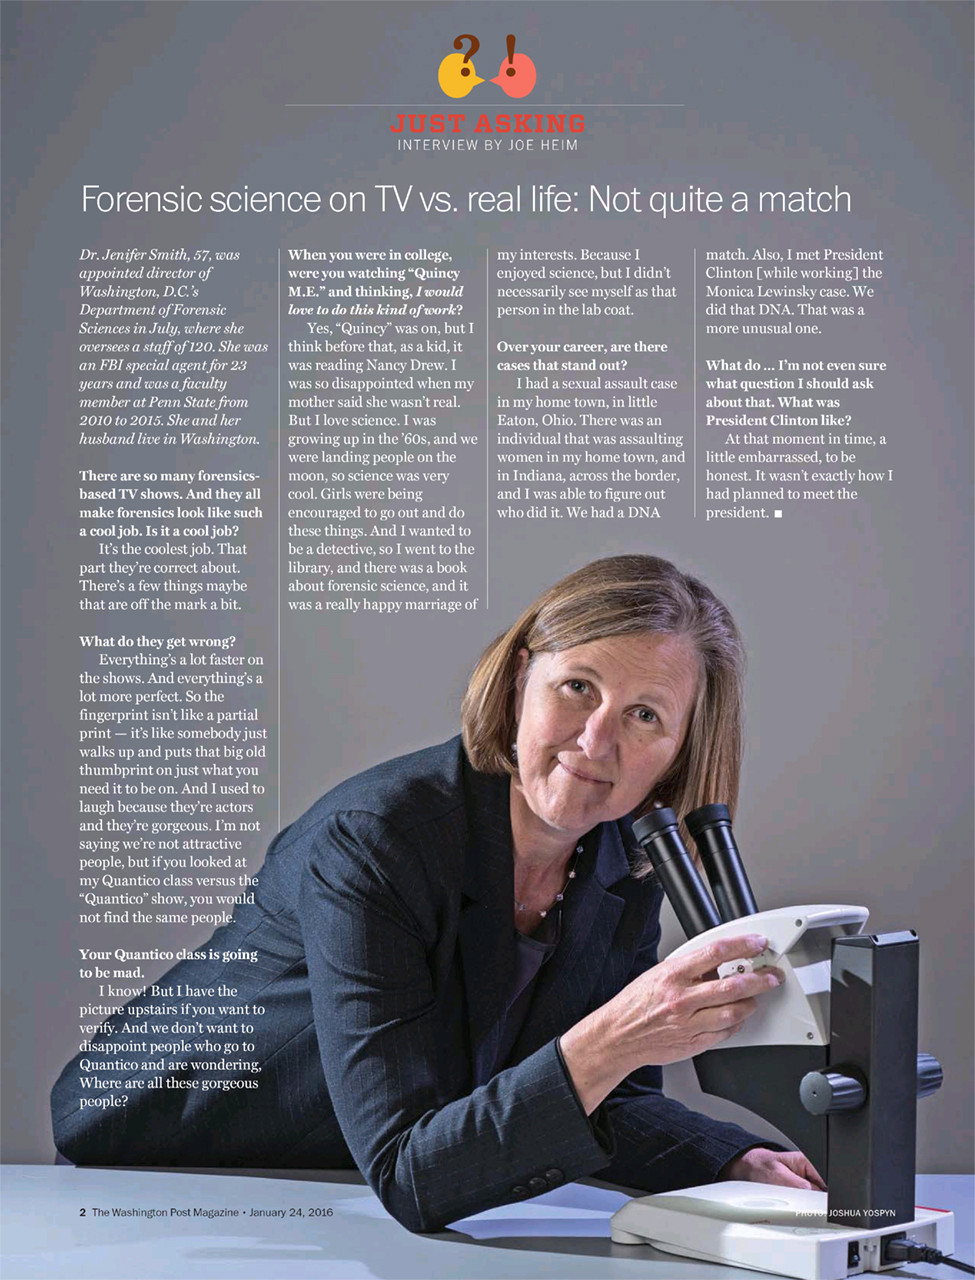 Dr. Jenifer Smith, Director of the Washington, D.C. Department of Forensic Sciences, for Washington Post Magazine.